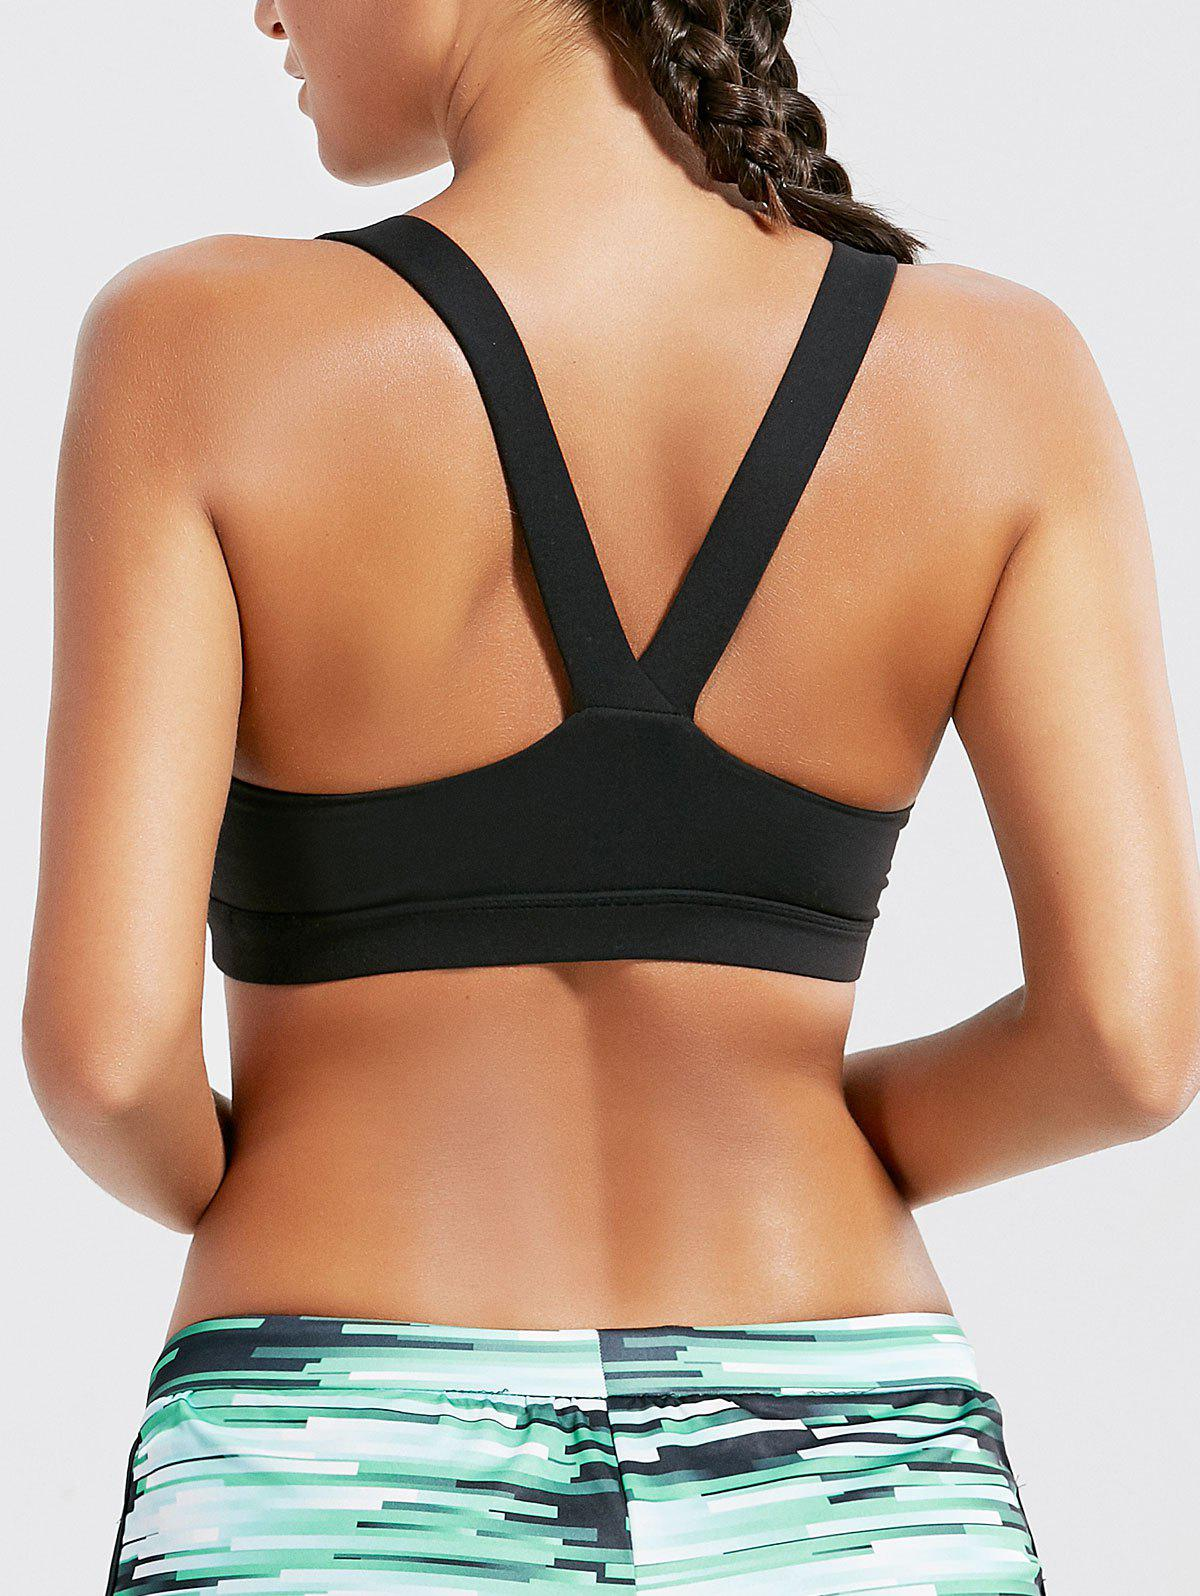 New Racer Back Padded Workout Bra Top